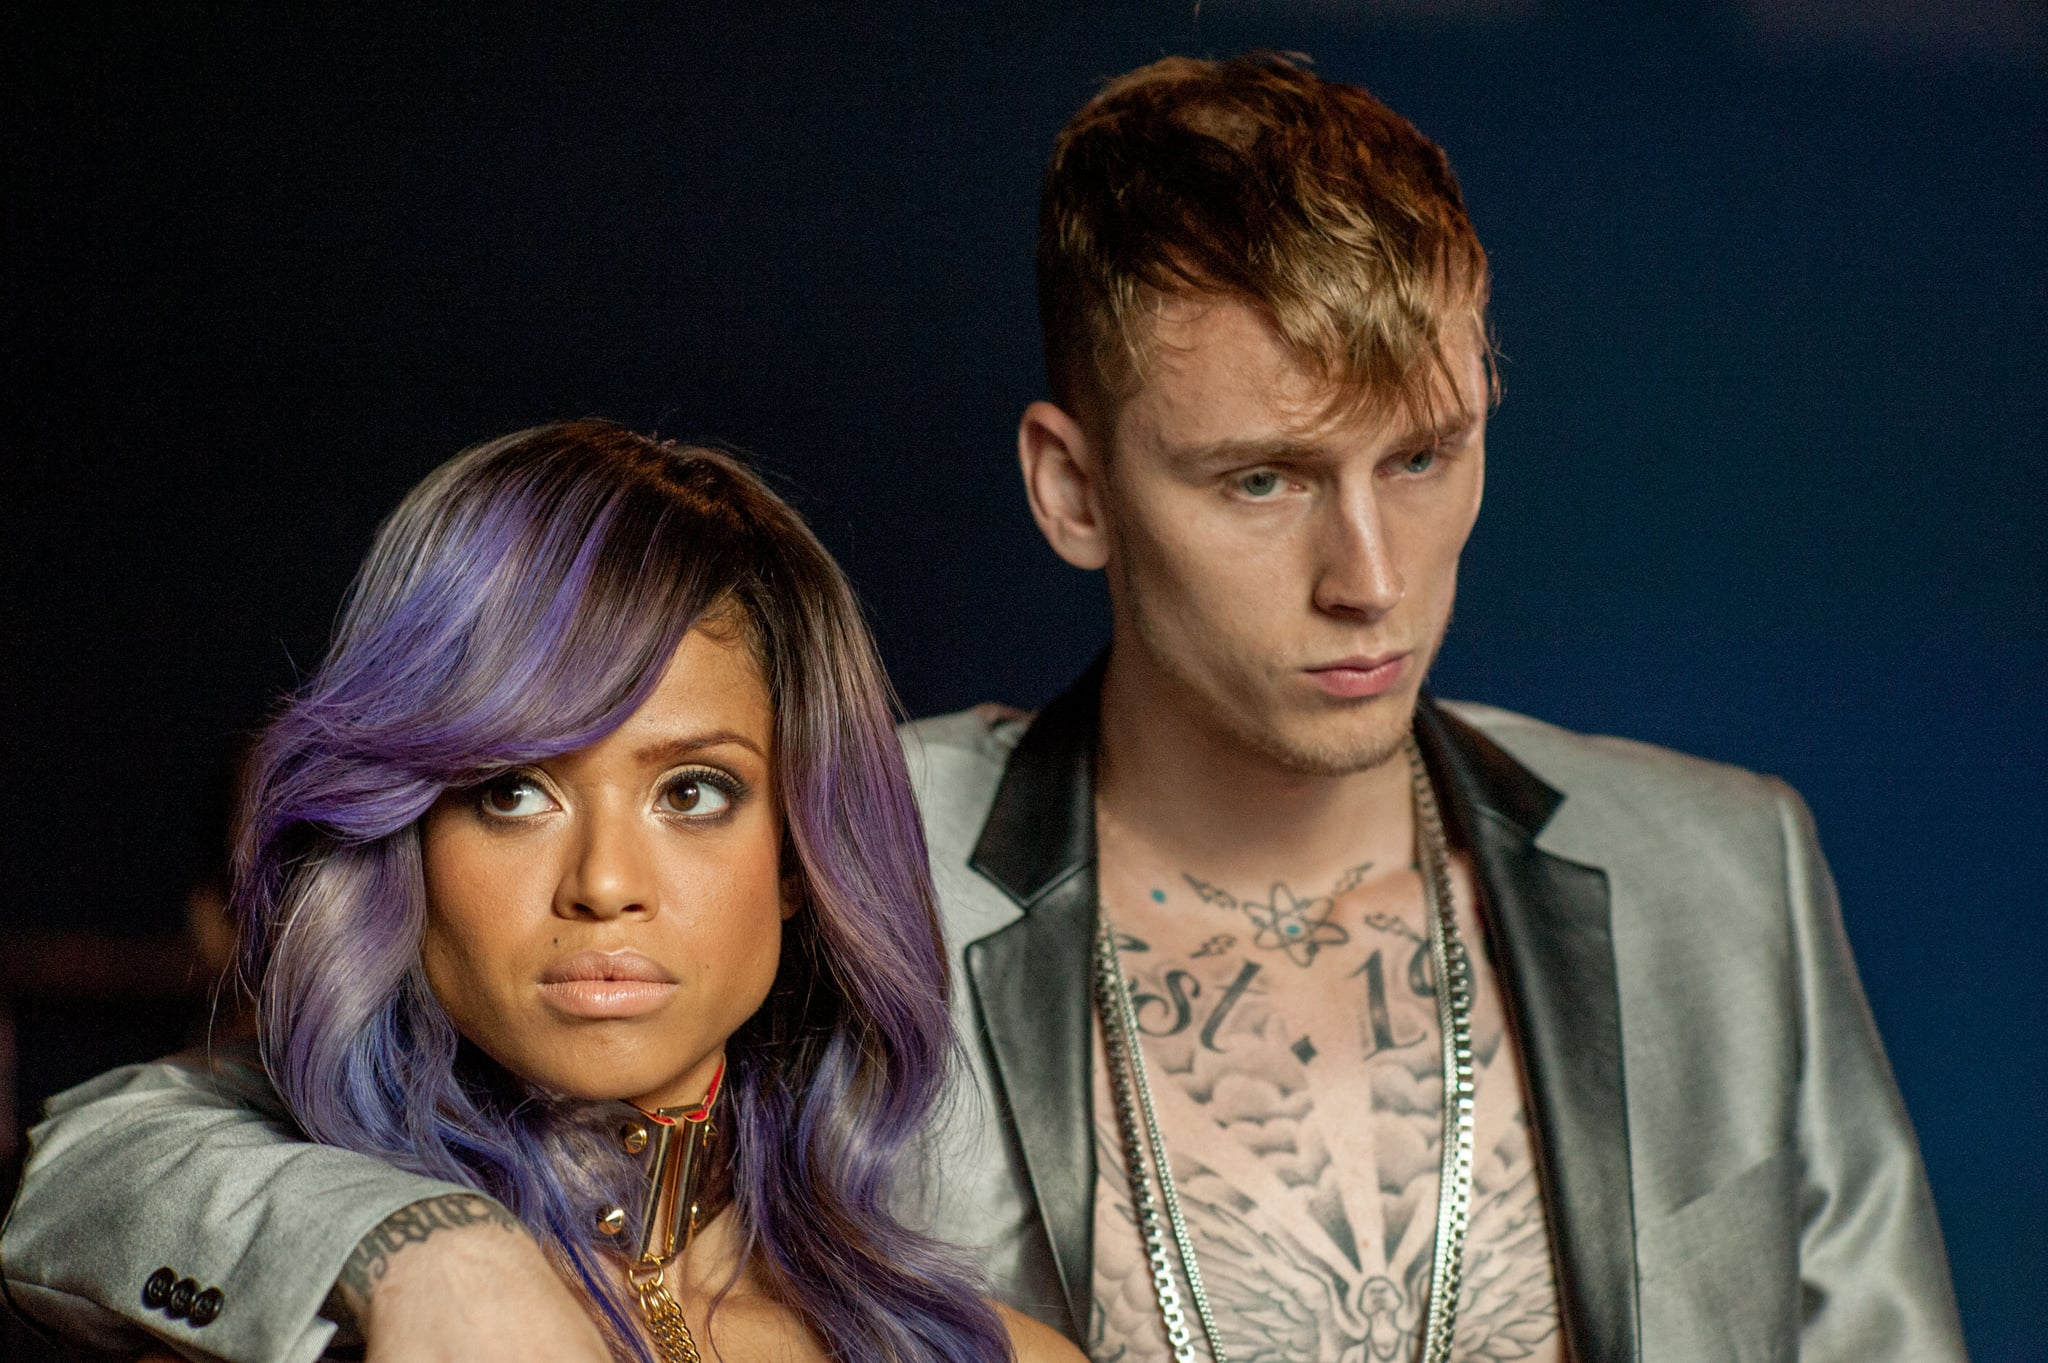 BEYOND THE LIGHTS, from left: Gug Mbatha-Raw, Richard Colson Baker (aka Machine Gun Kelly), 2014. ph: Suzanne Tenner/Relativity Media/courtesy Everett Collection